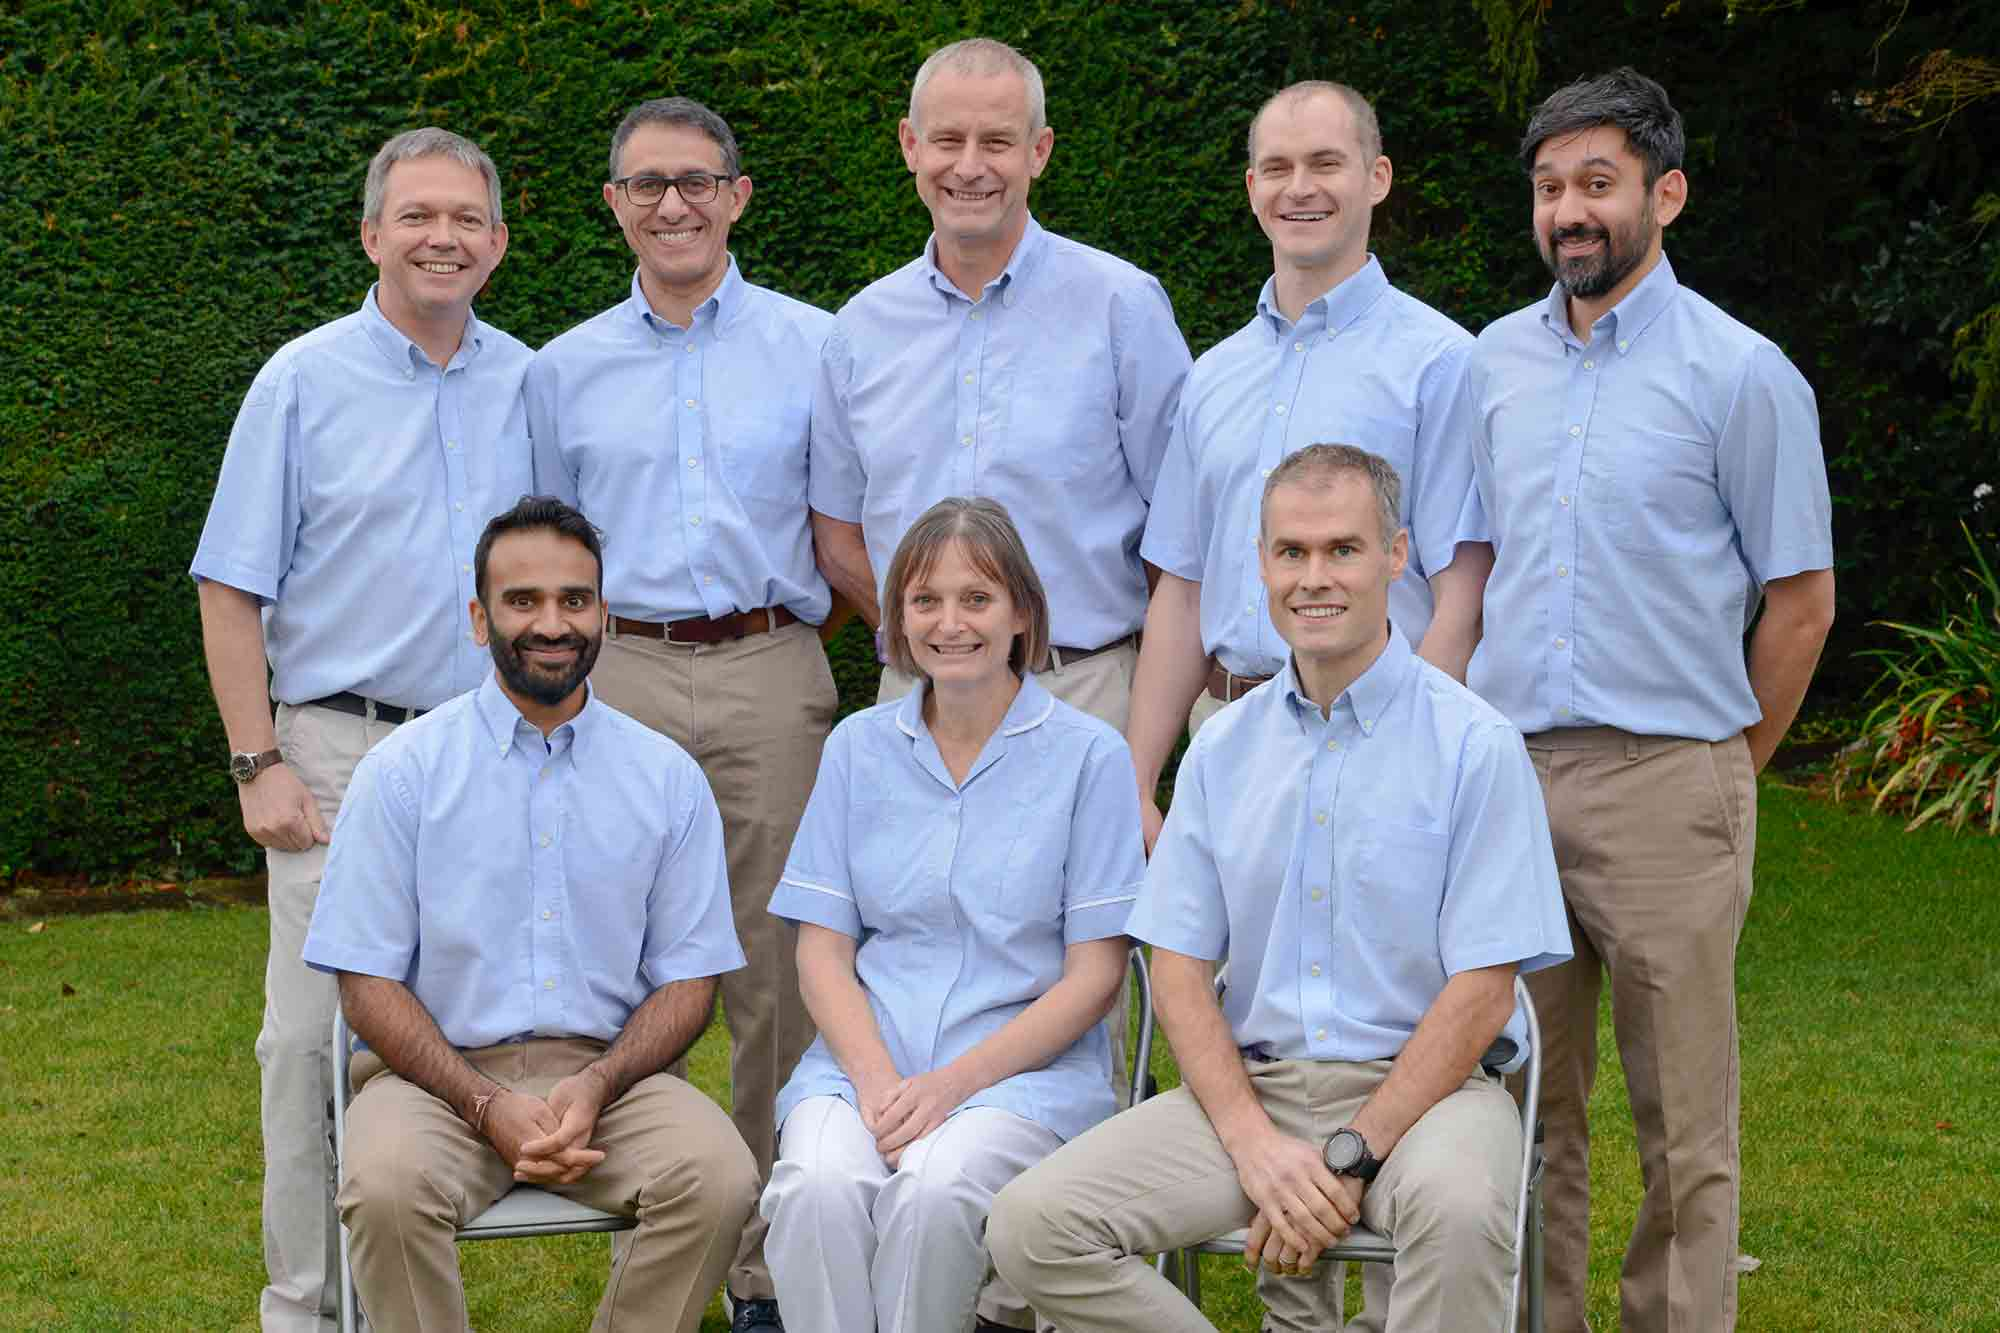 Independent dental group celebrate latest acquisition